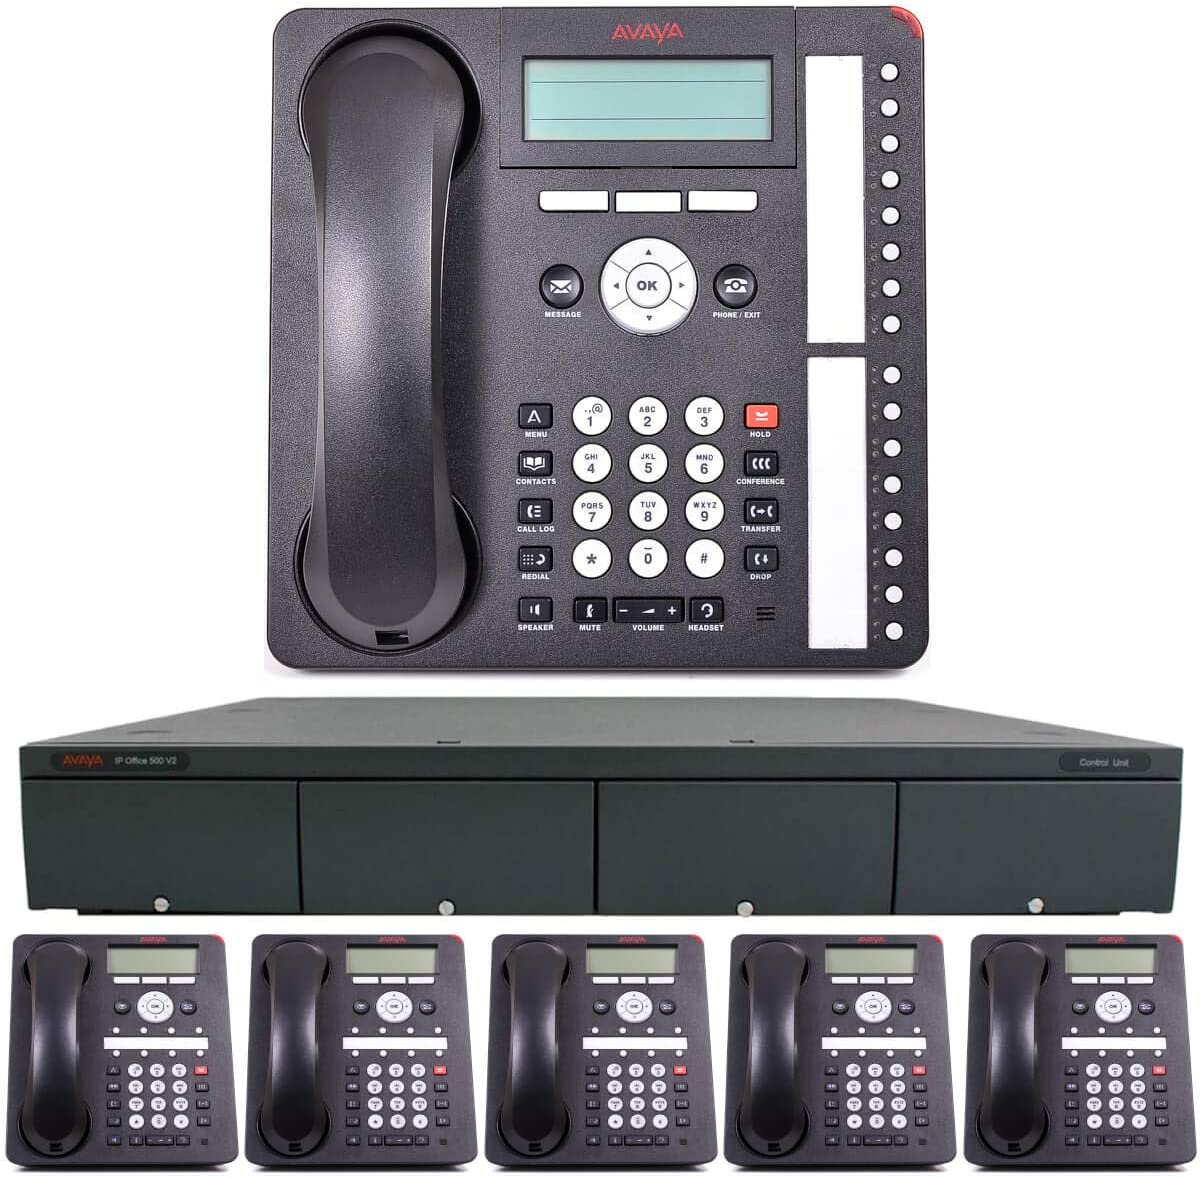 Avaya IP Office Phone System: Basic Digital Edition - & 1 Year of Free Telco Depot Dialtone Service (6 Phone Bundle)